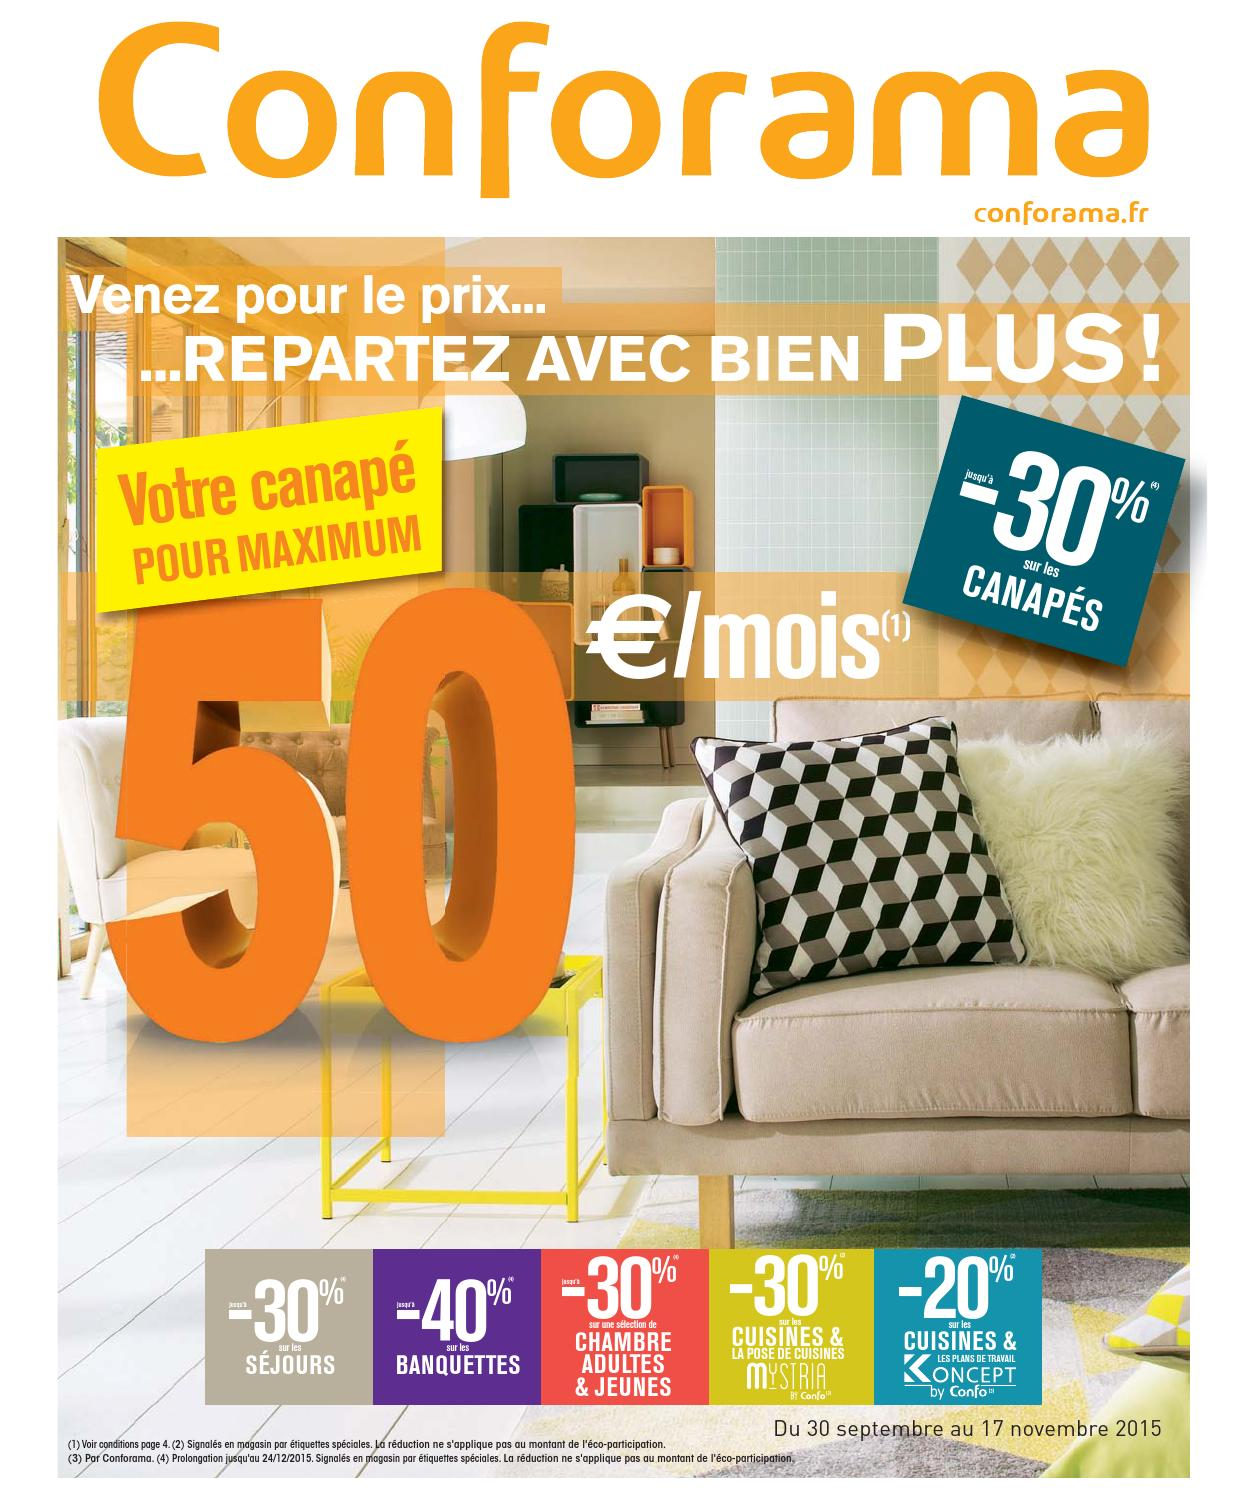 Conforama catalogue 30septembre 17novembre2015 by ...